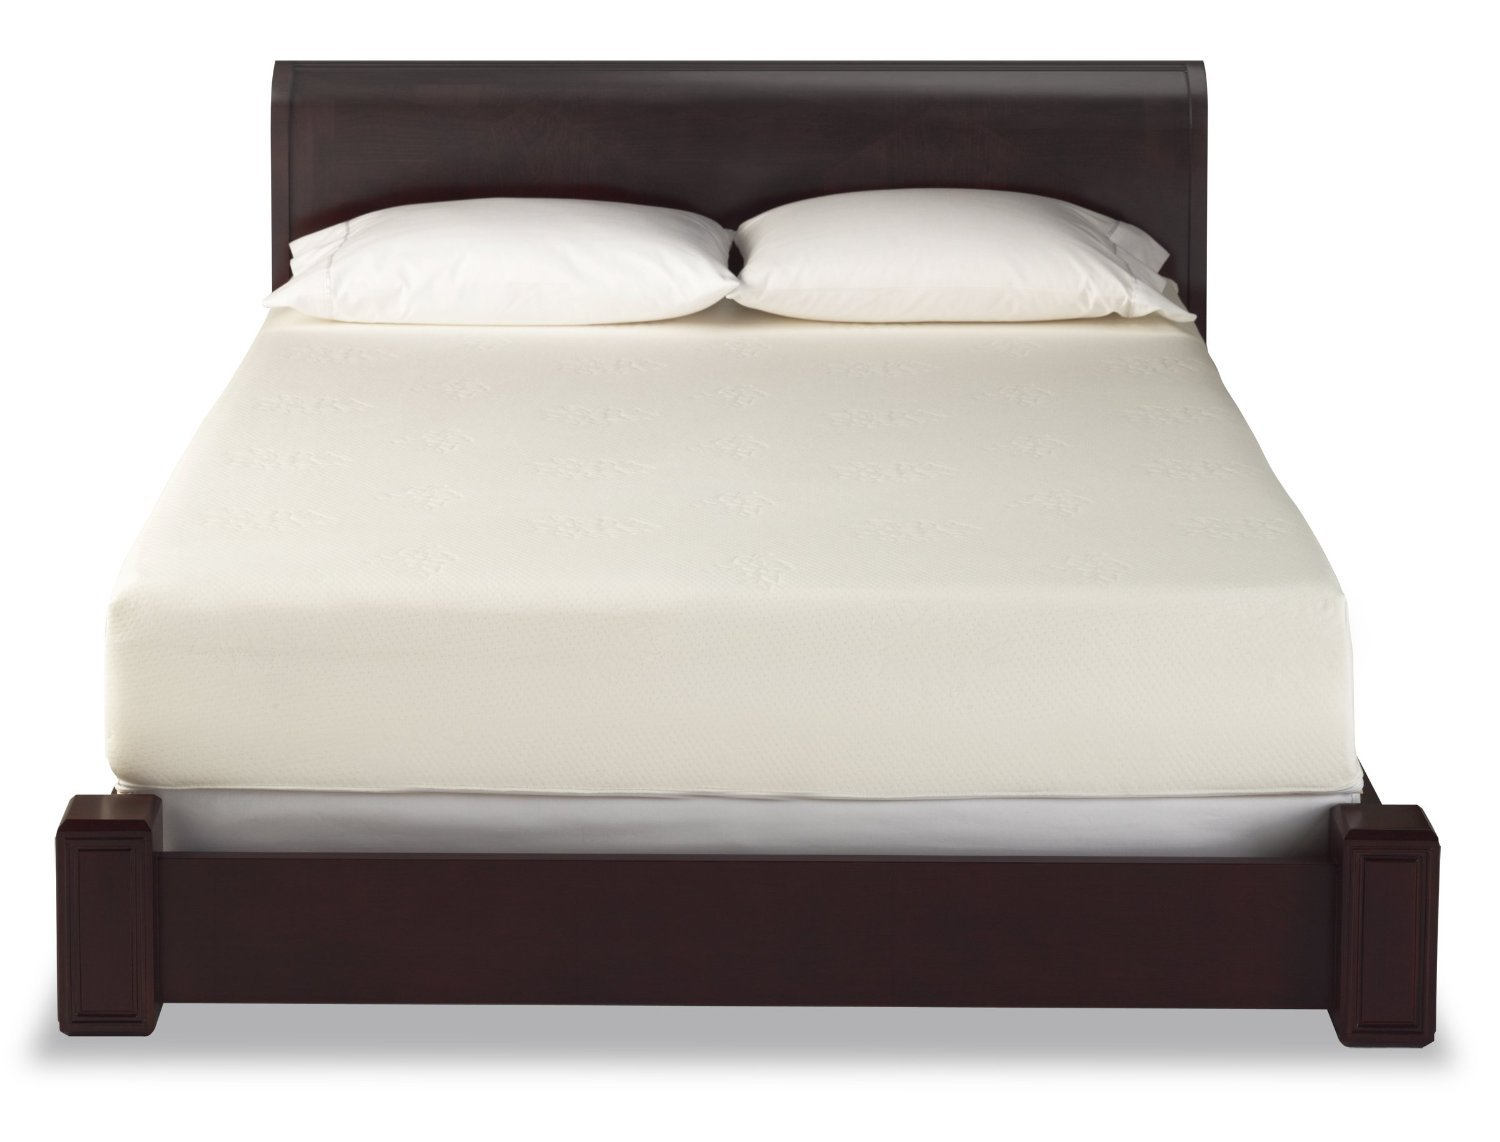 12 Inch Memory Foam Mattress For Larger People